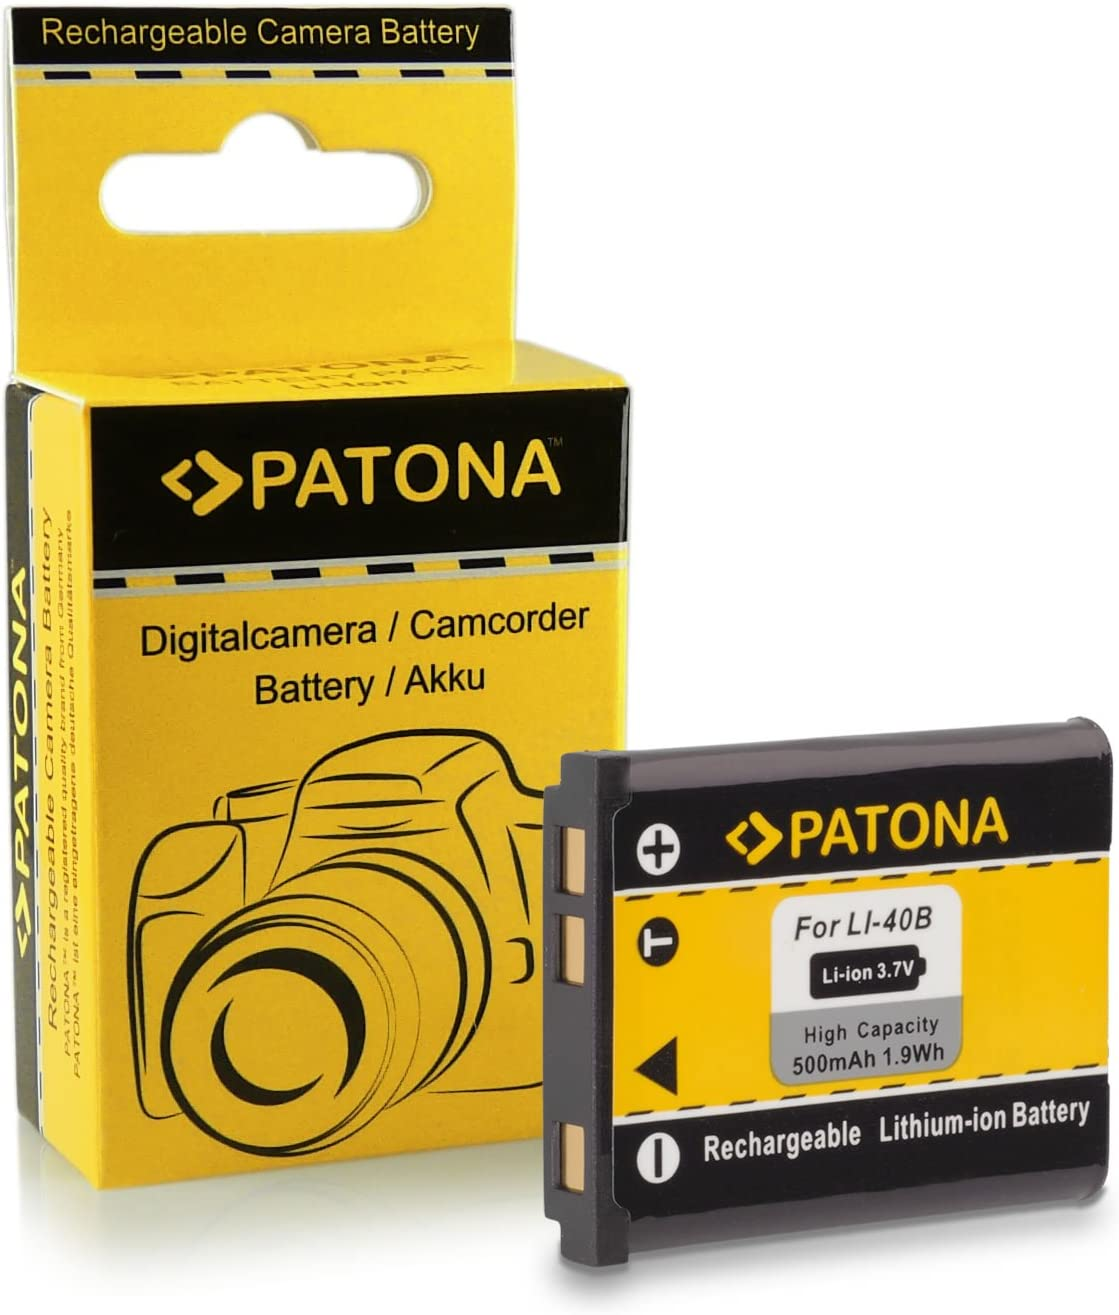 Dual Charger/for Olympus PS-BLN1 OMD EM5/Mark II Stylus XZ-2/Pen E-P5/E-M1/E-P5/Battery with Micro USB Cable Patona